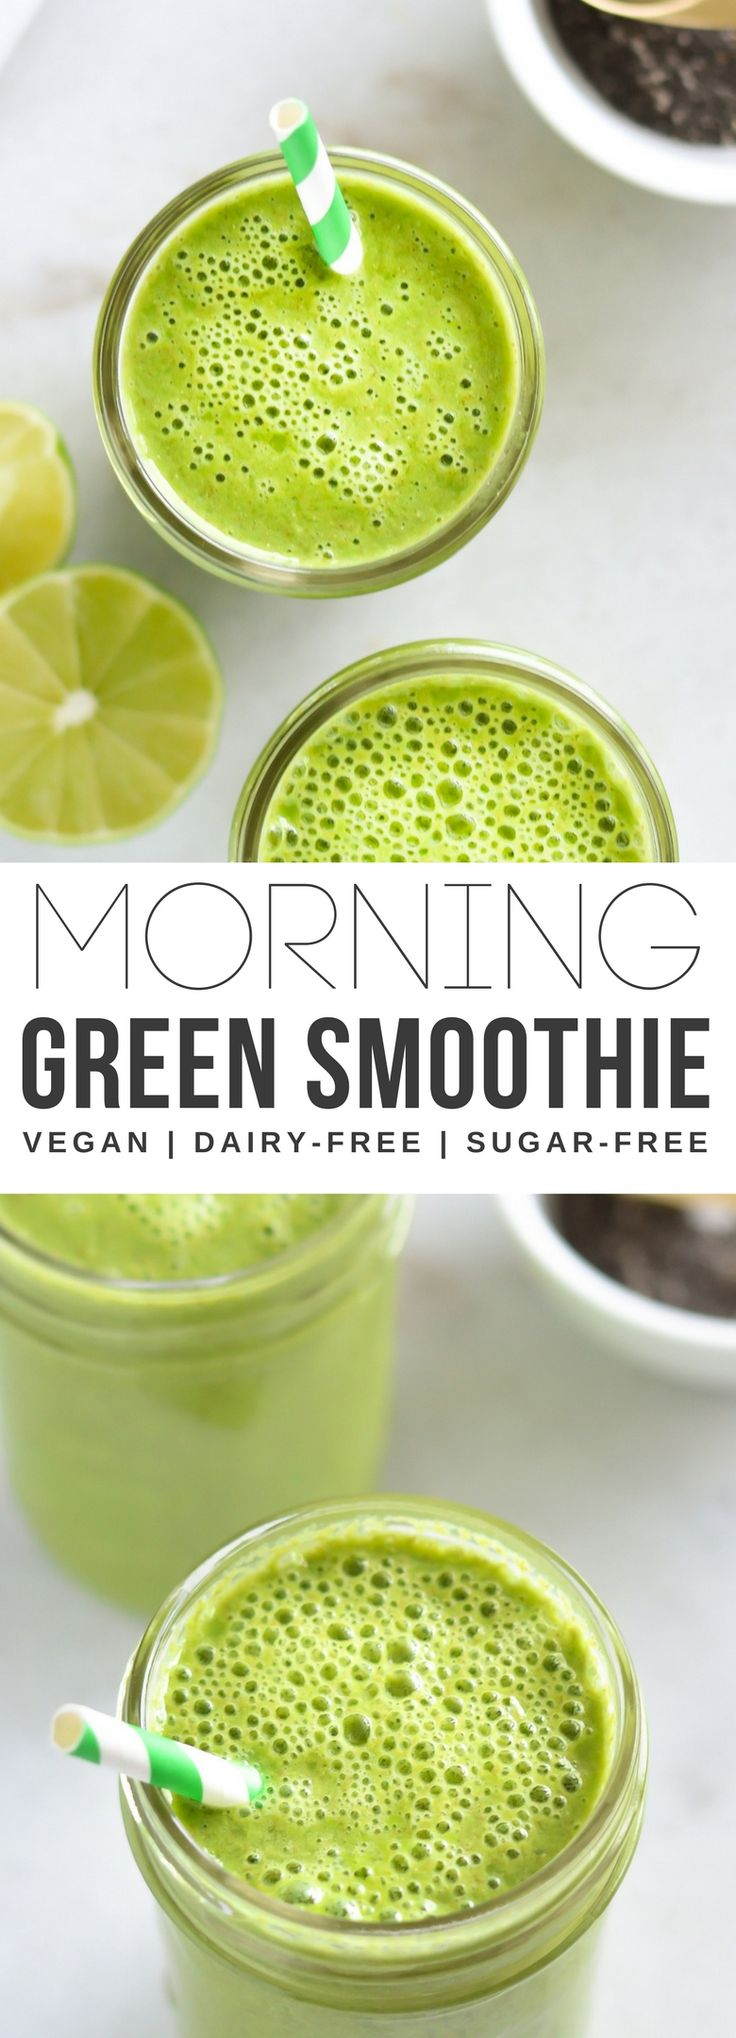 A delicious and simple 5-ingredient sweet and tangy green smoothie that can easily be customized. Made with fresh spinach, tangy lime, and sweet banana, this smoothie is perfect for busy mornings or as an afternoon snack. Either way, this smoothie won't disappoint.